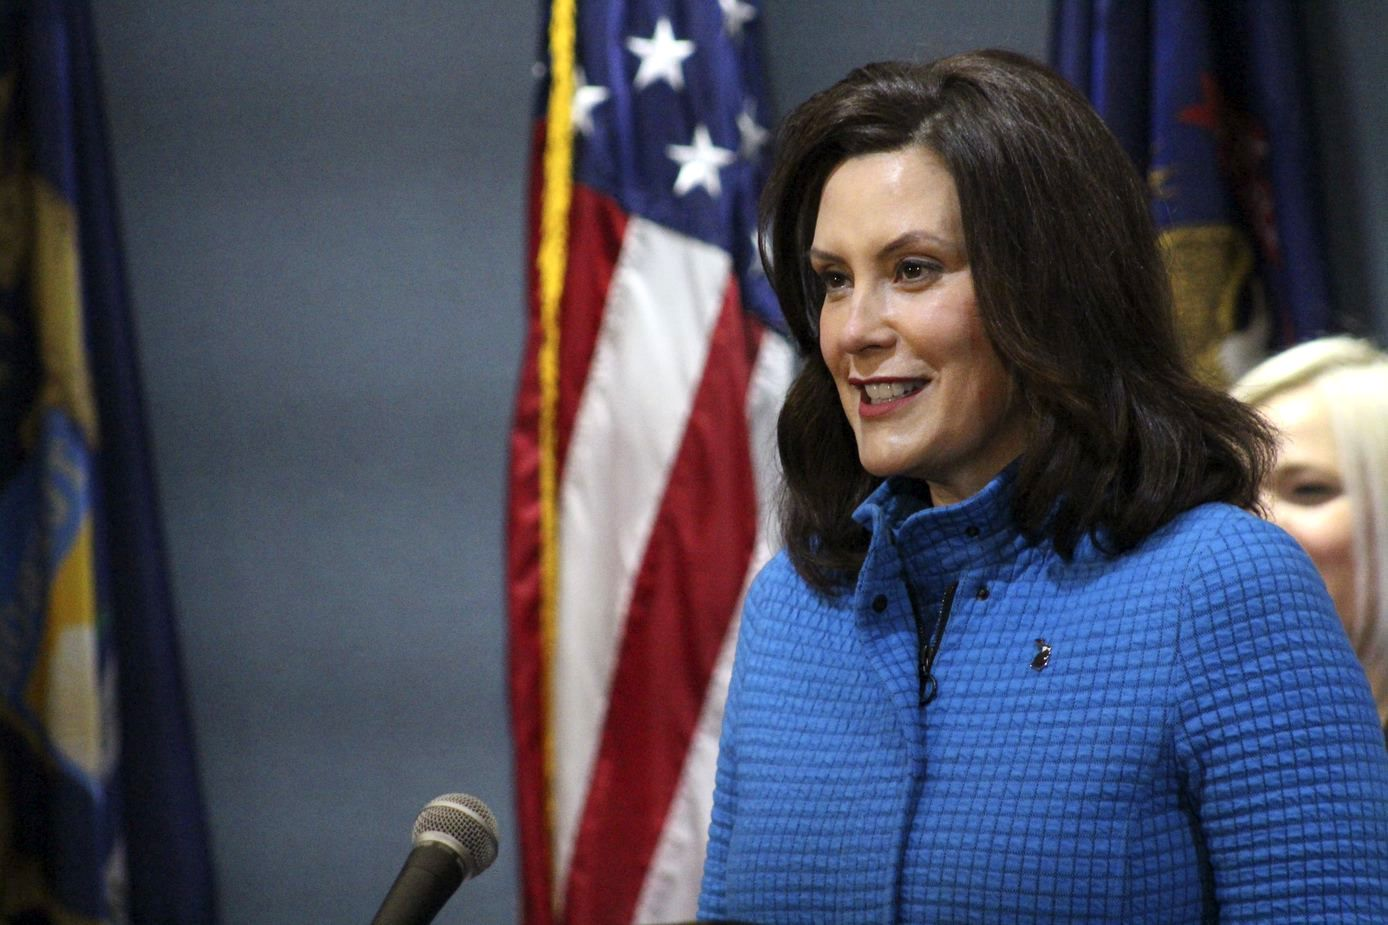 Michigan Panel Rejects Petitions To Recall Gov Gretchen Whitmer Attorney General Dana Nessel Mlive Com